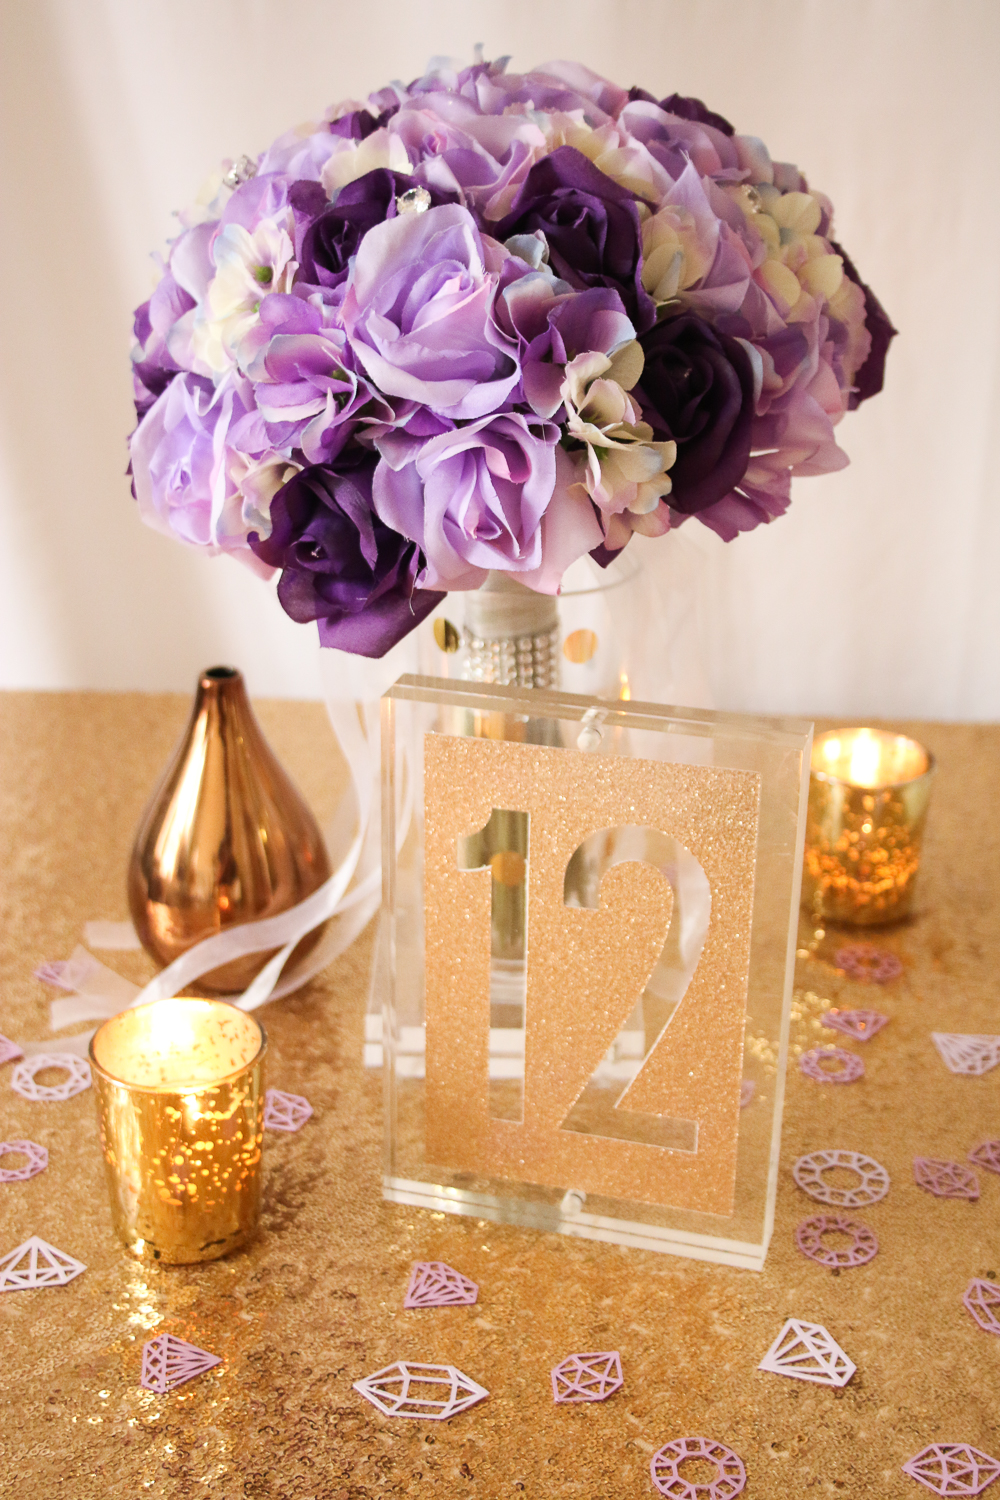 Acrylic Block Table Numbers using Cricut Explore via The Budget Savvy Bride